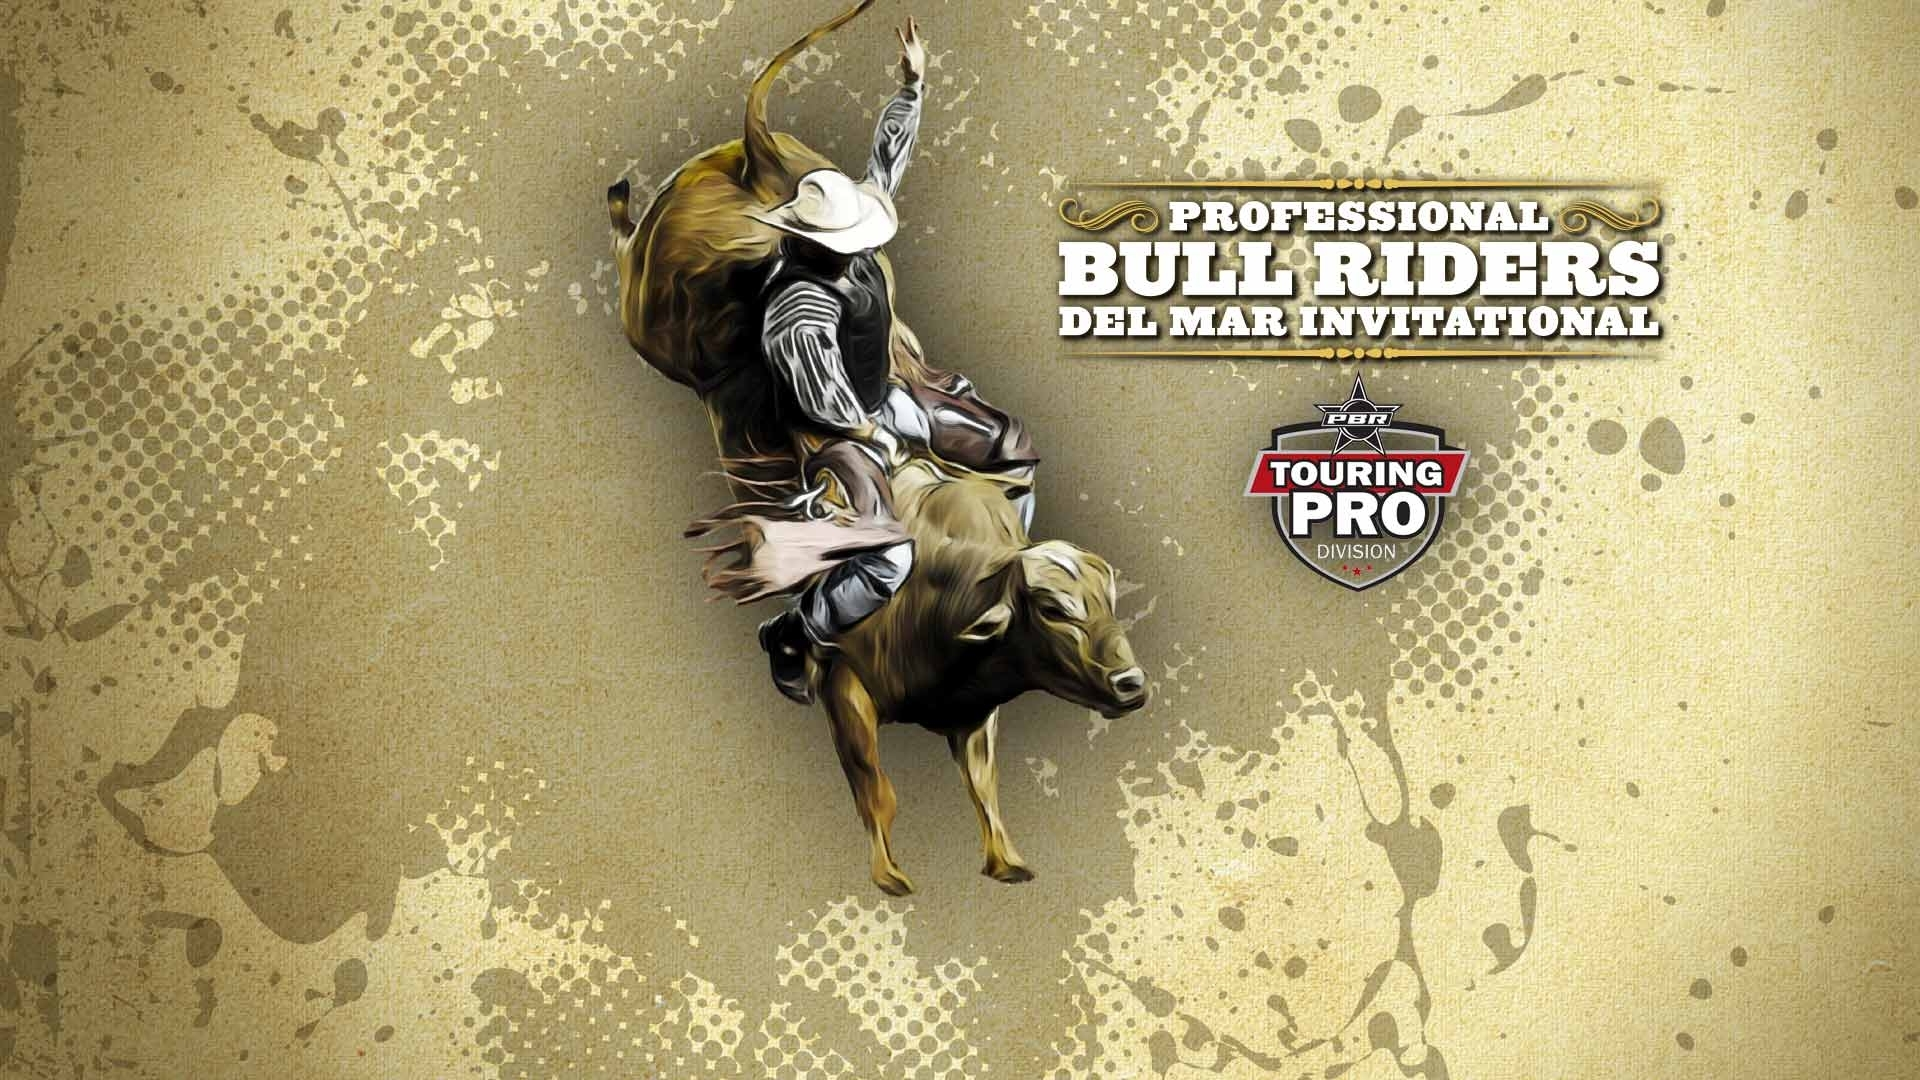 del mar invitational professional bull riders tour